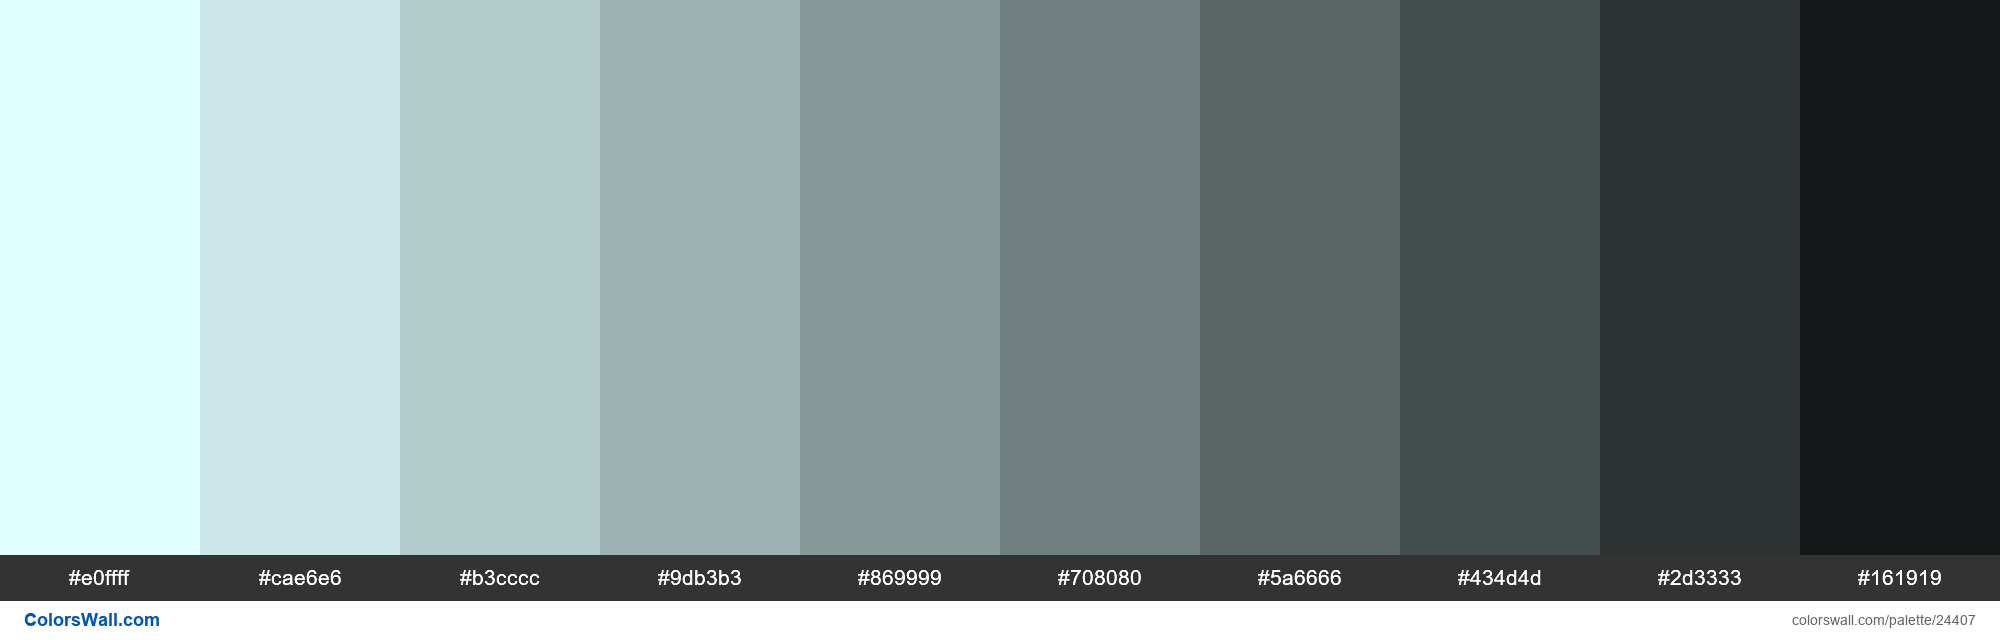 Shades of Light Cyan #E0FFFF hex color - #24407